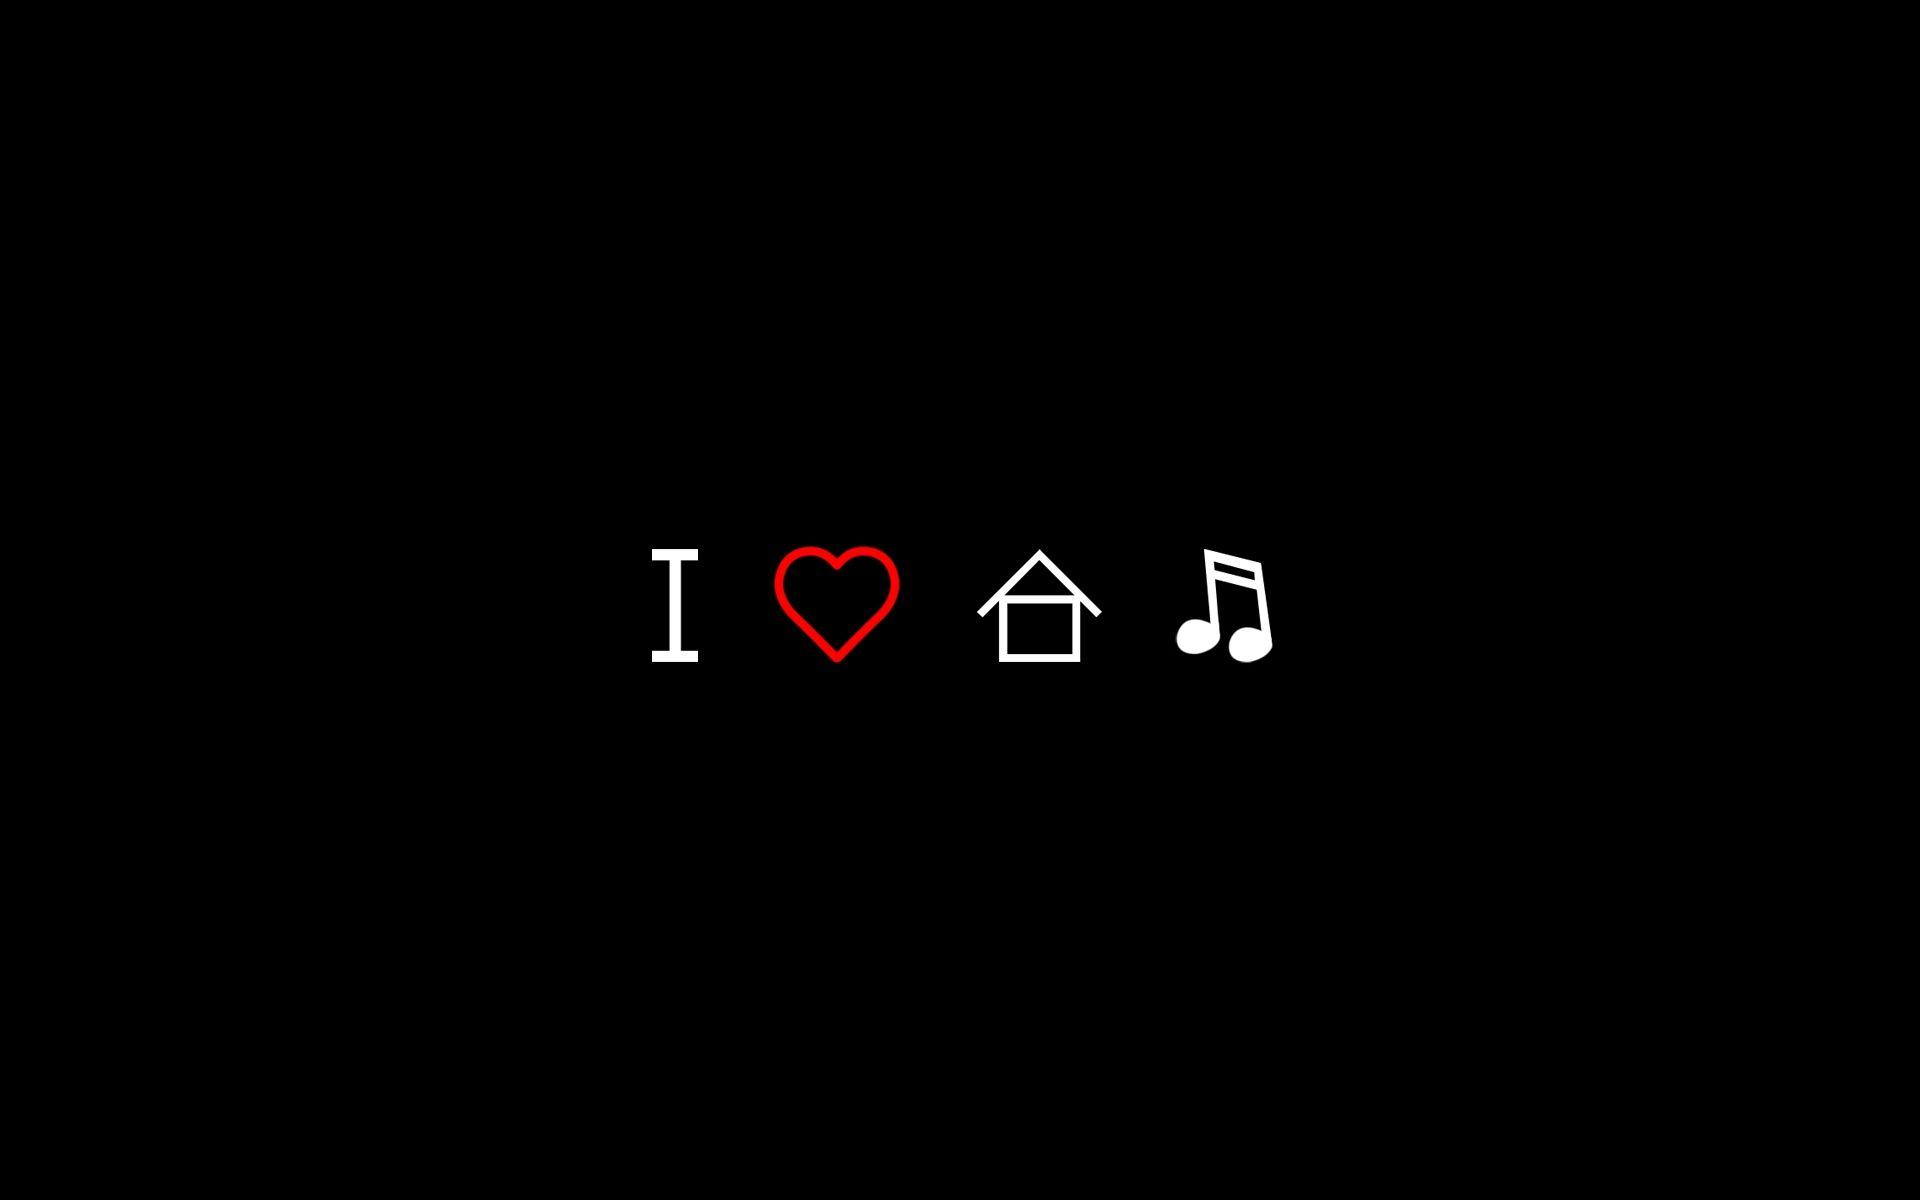 Love Wallpapers Songs : I Love House Music Wallpapers - Wallpaper cave